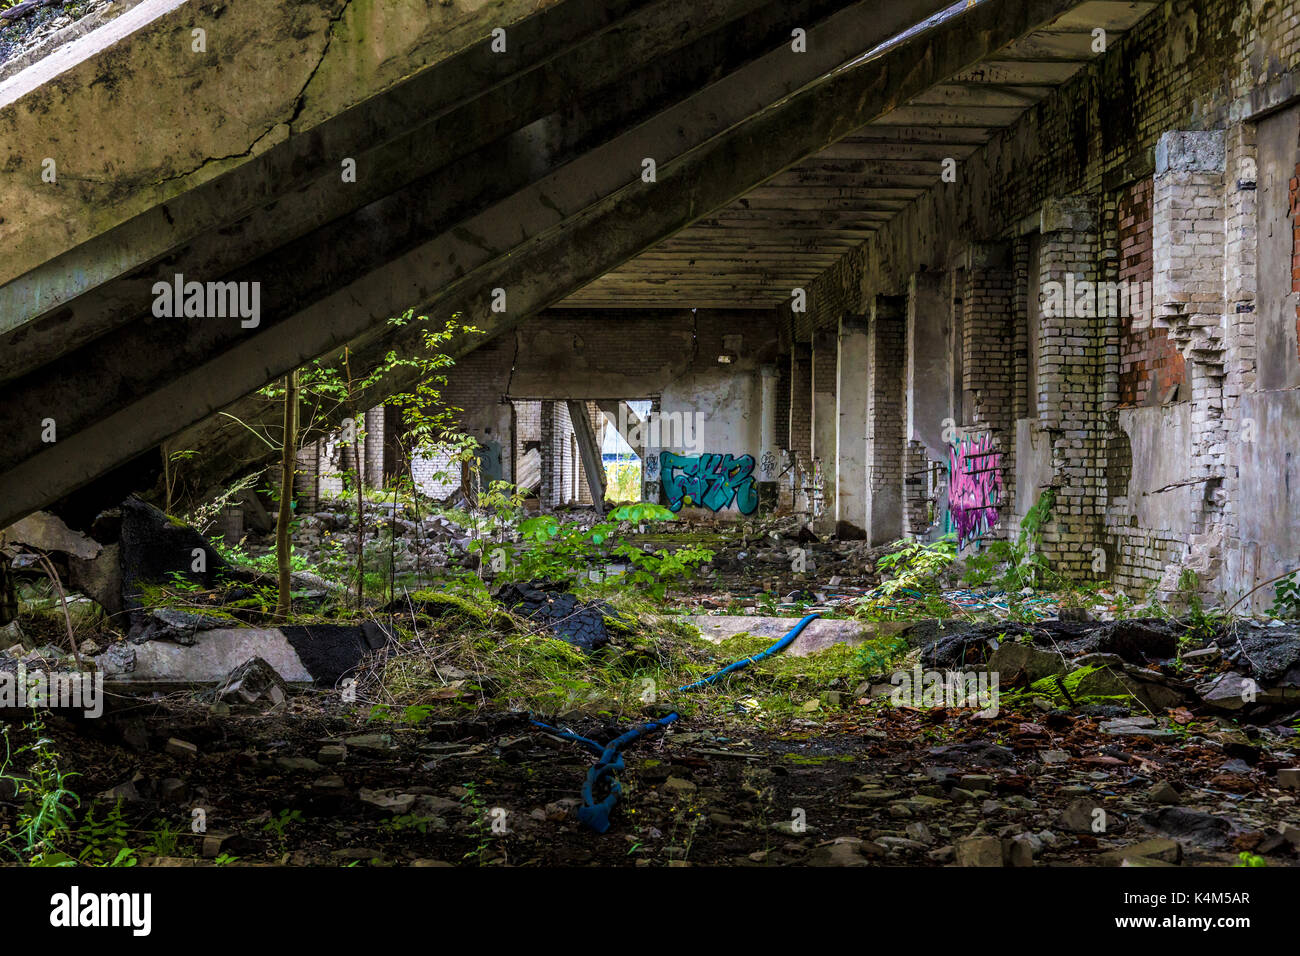 Old decayed building with green moss and trees growing inside - Stock Image